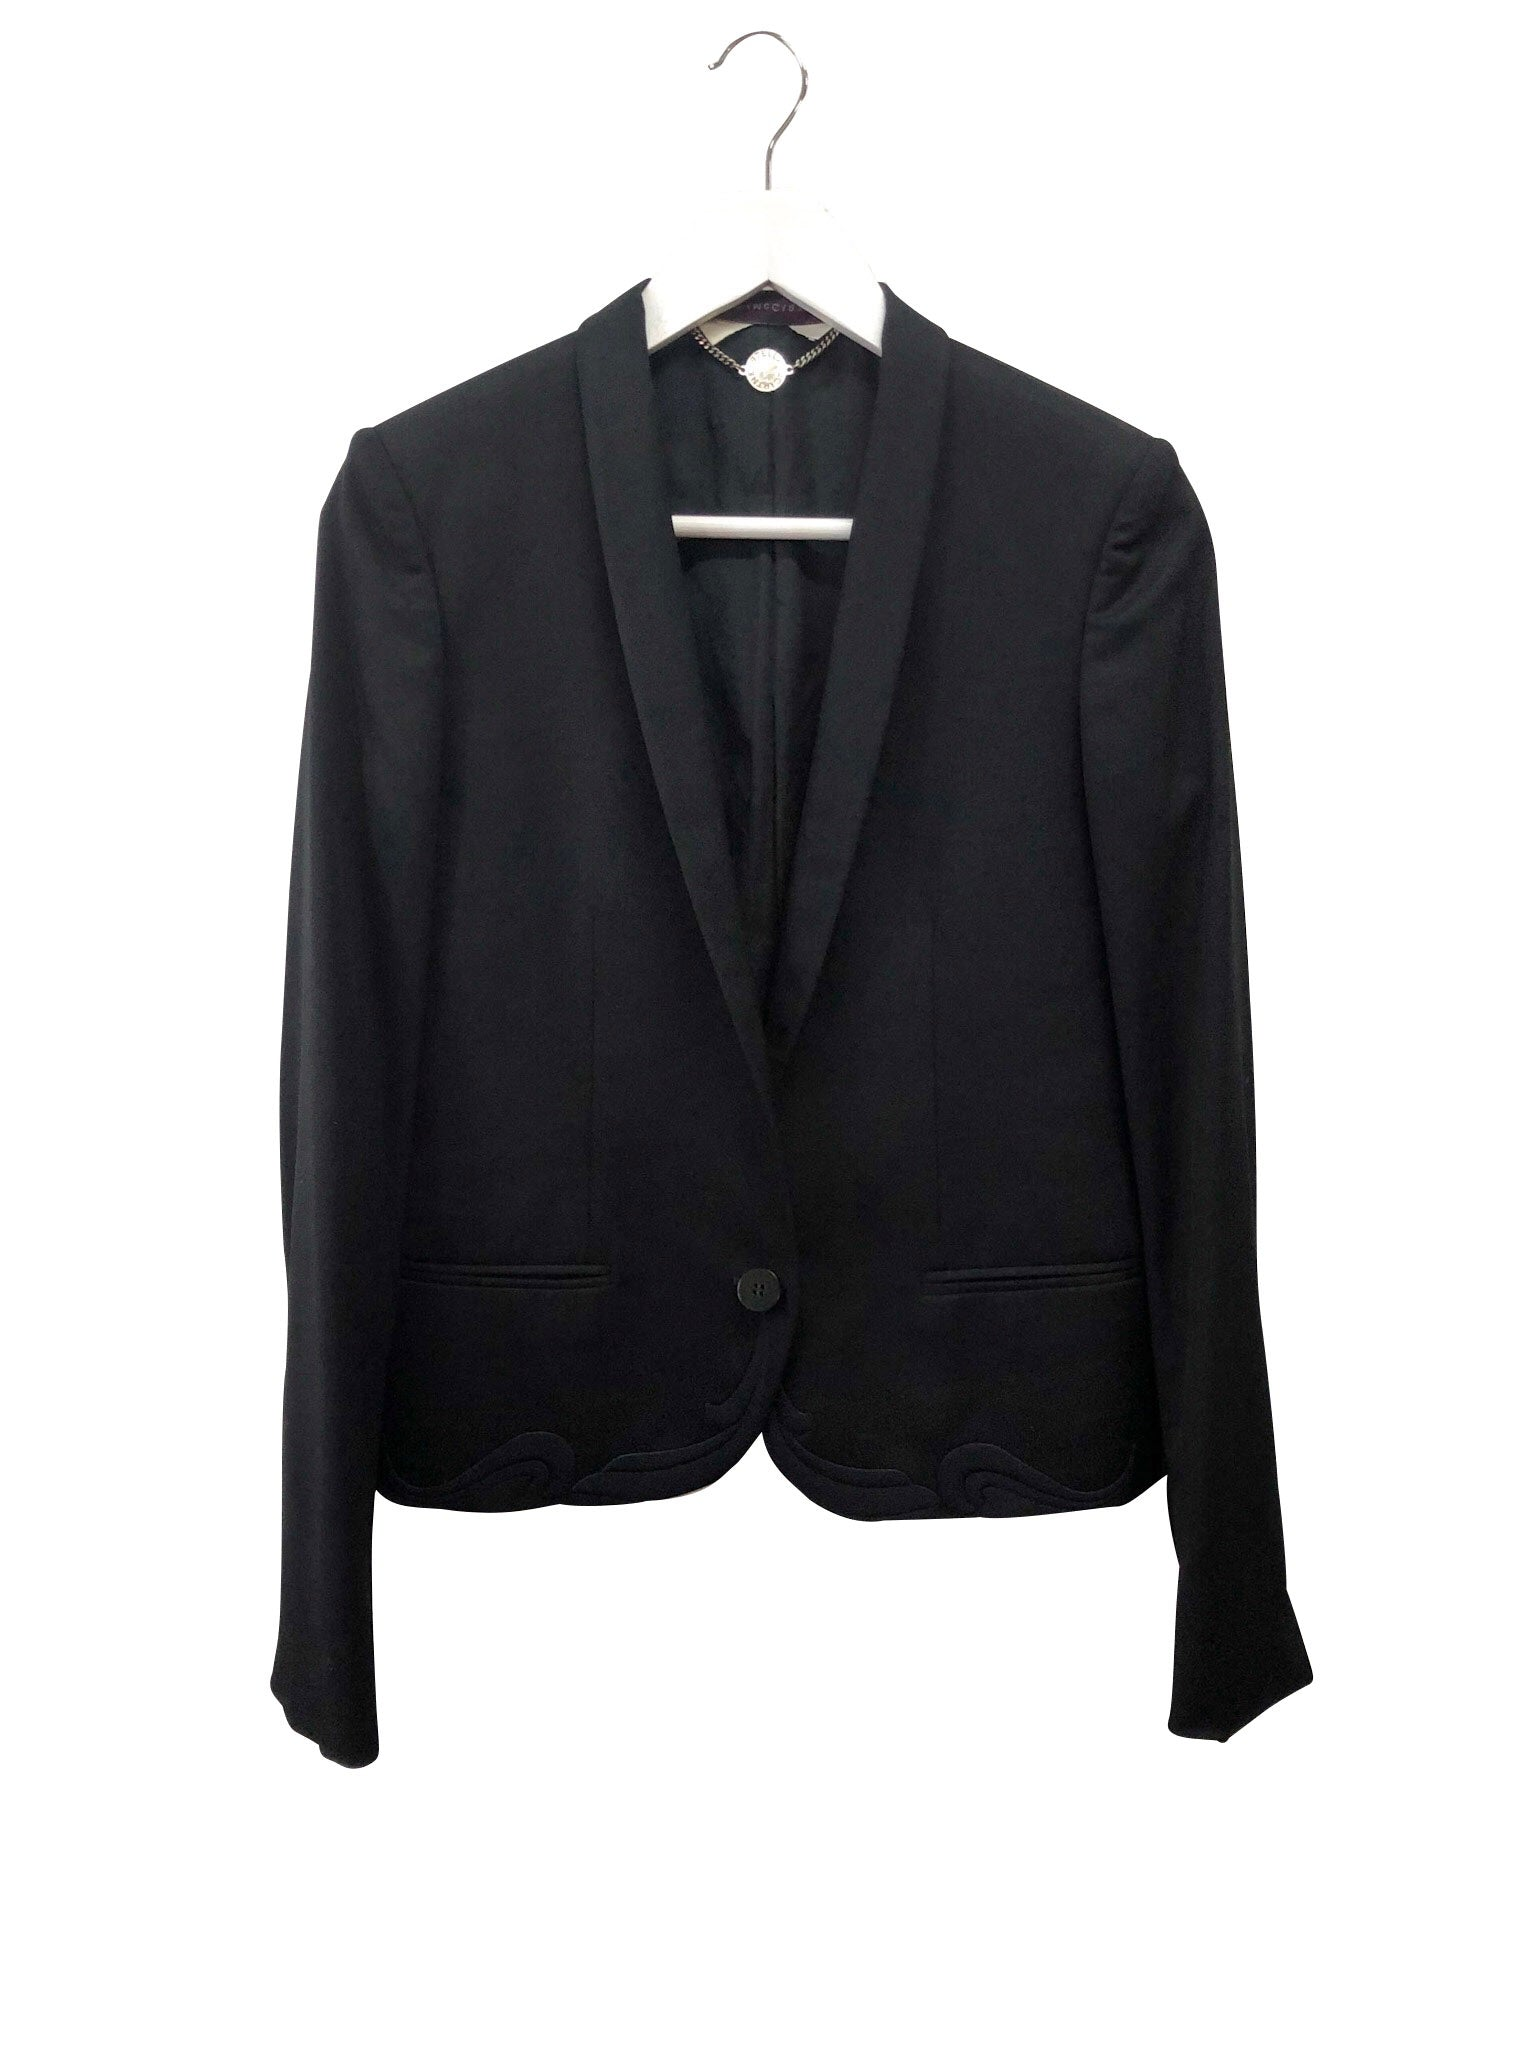 Stella McCartney Black Jacket